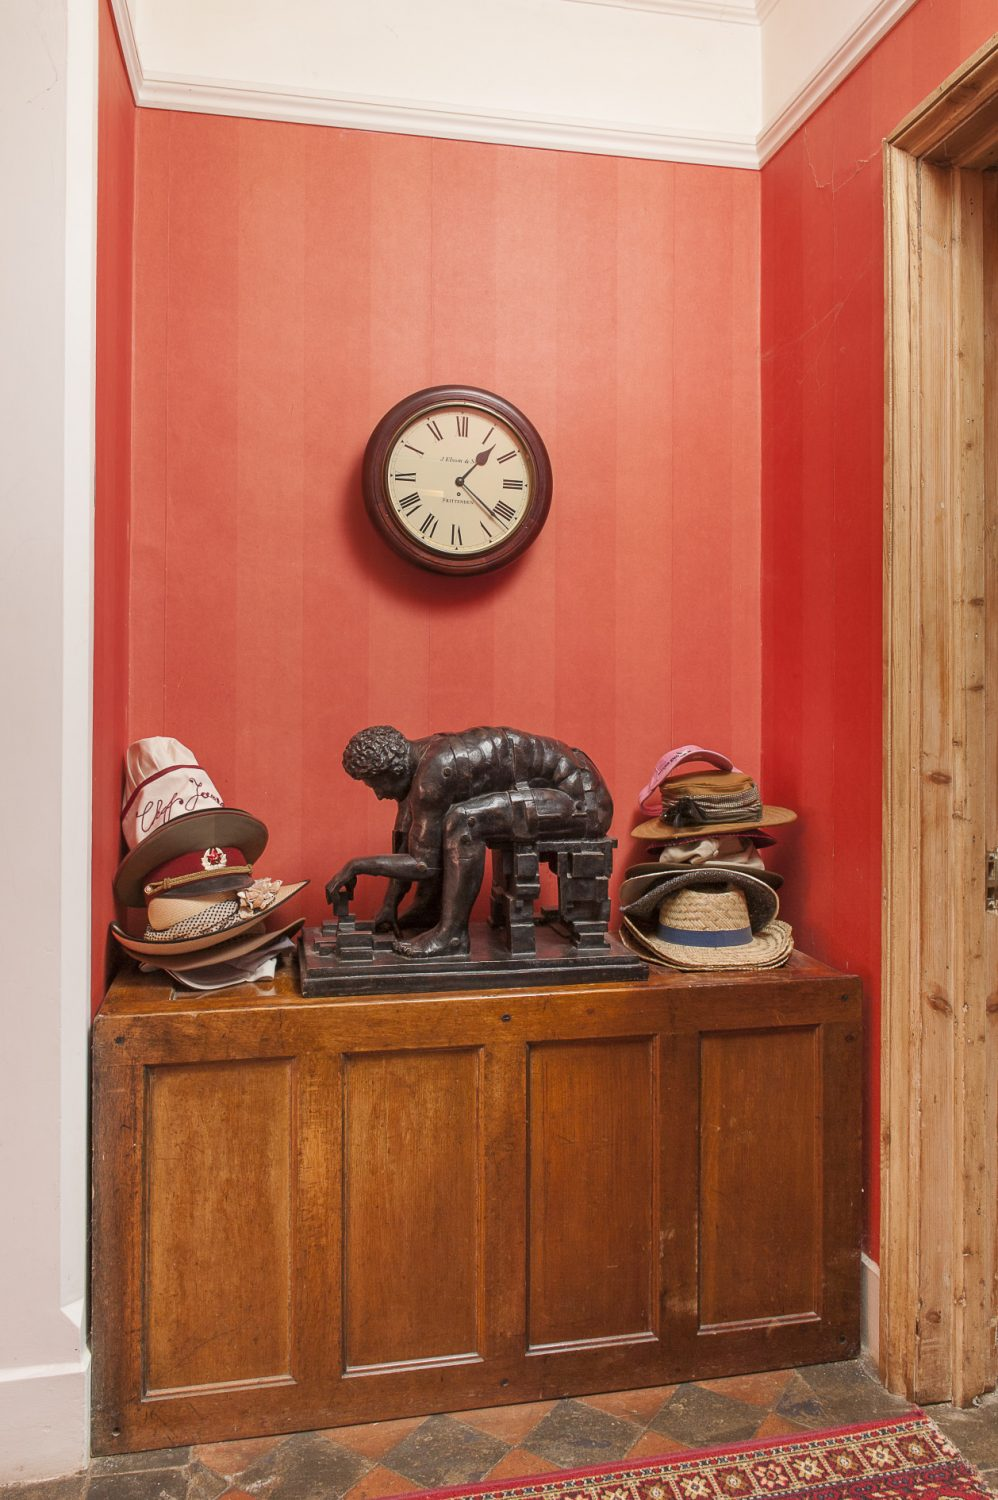 A bronze sculpture sits in between a collection of hats by the kitchen